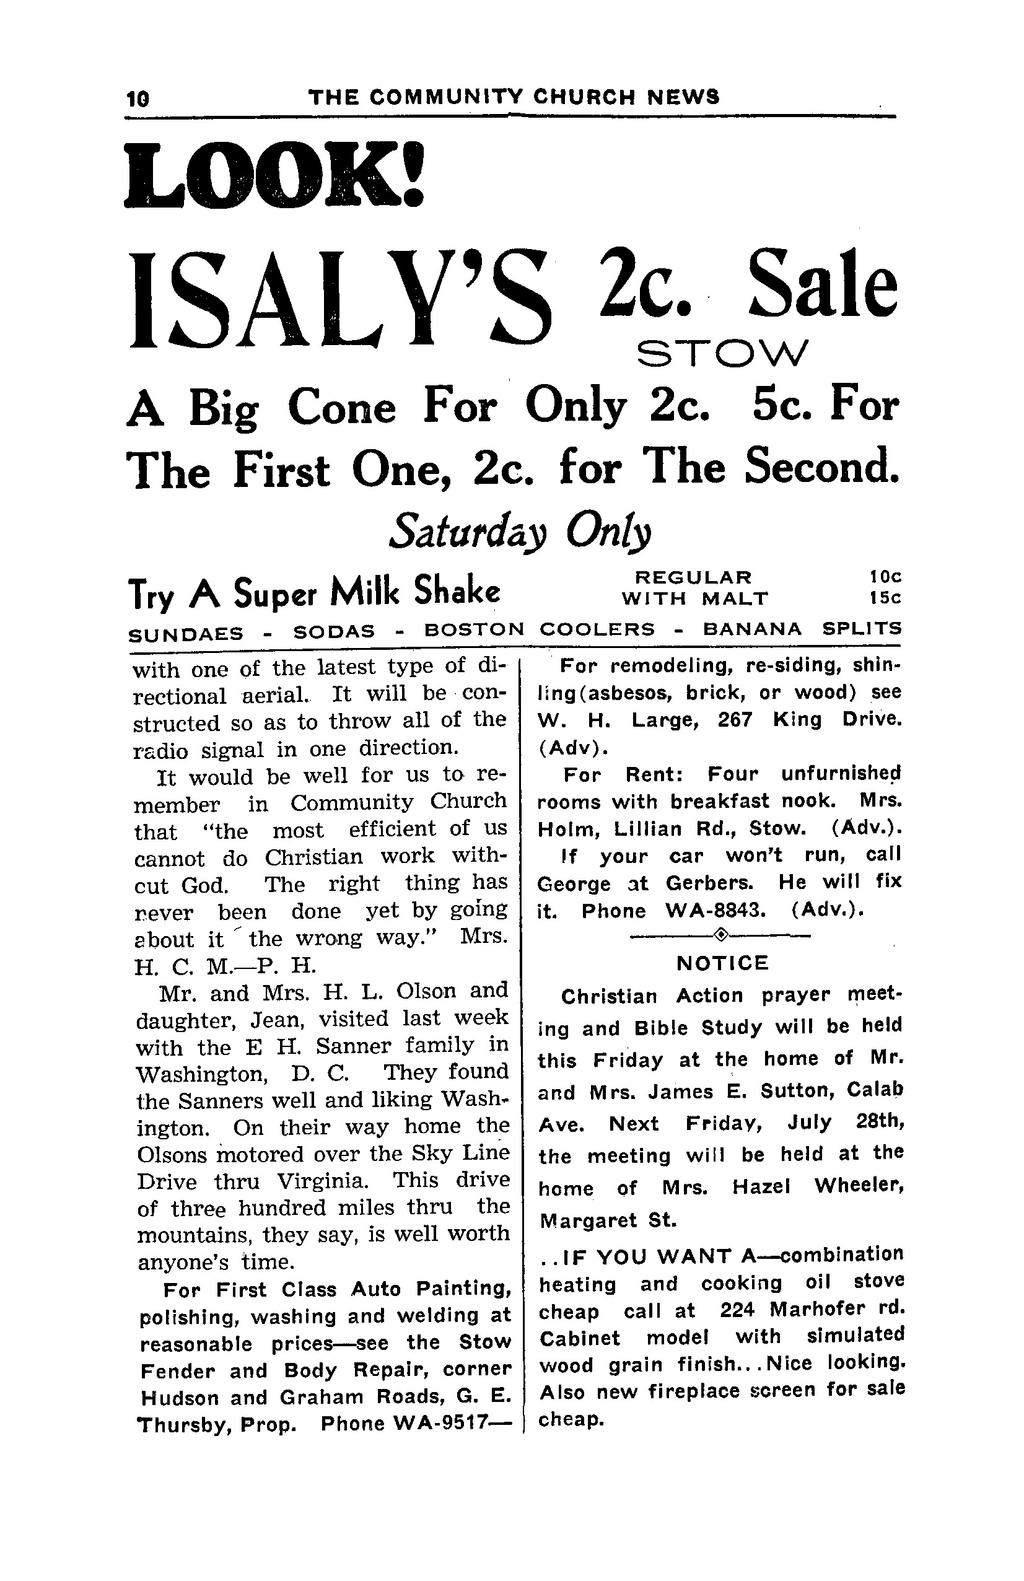 6 THE COMMUNITY CHURCH NEWS ^ LOOK! ISALY'S 2c. o Sale A Big Cone For Only 2c. 5c. For The First One, 2c. for The Second.